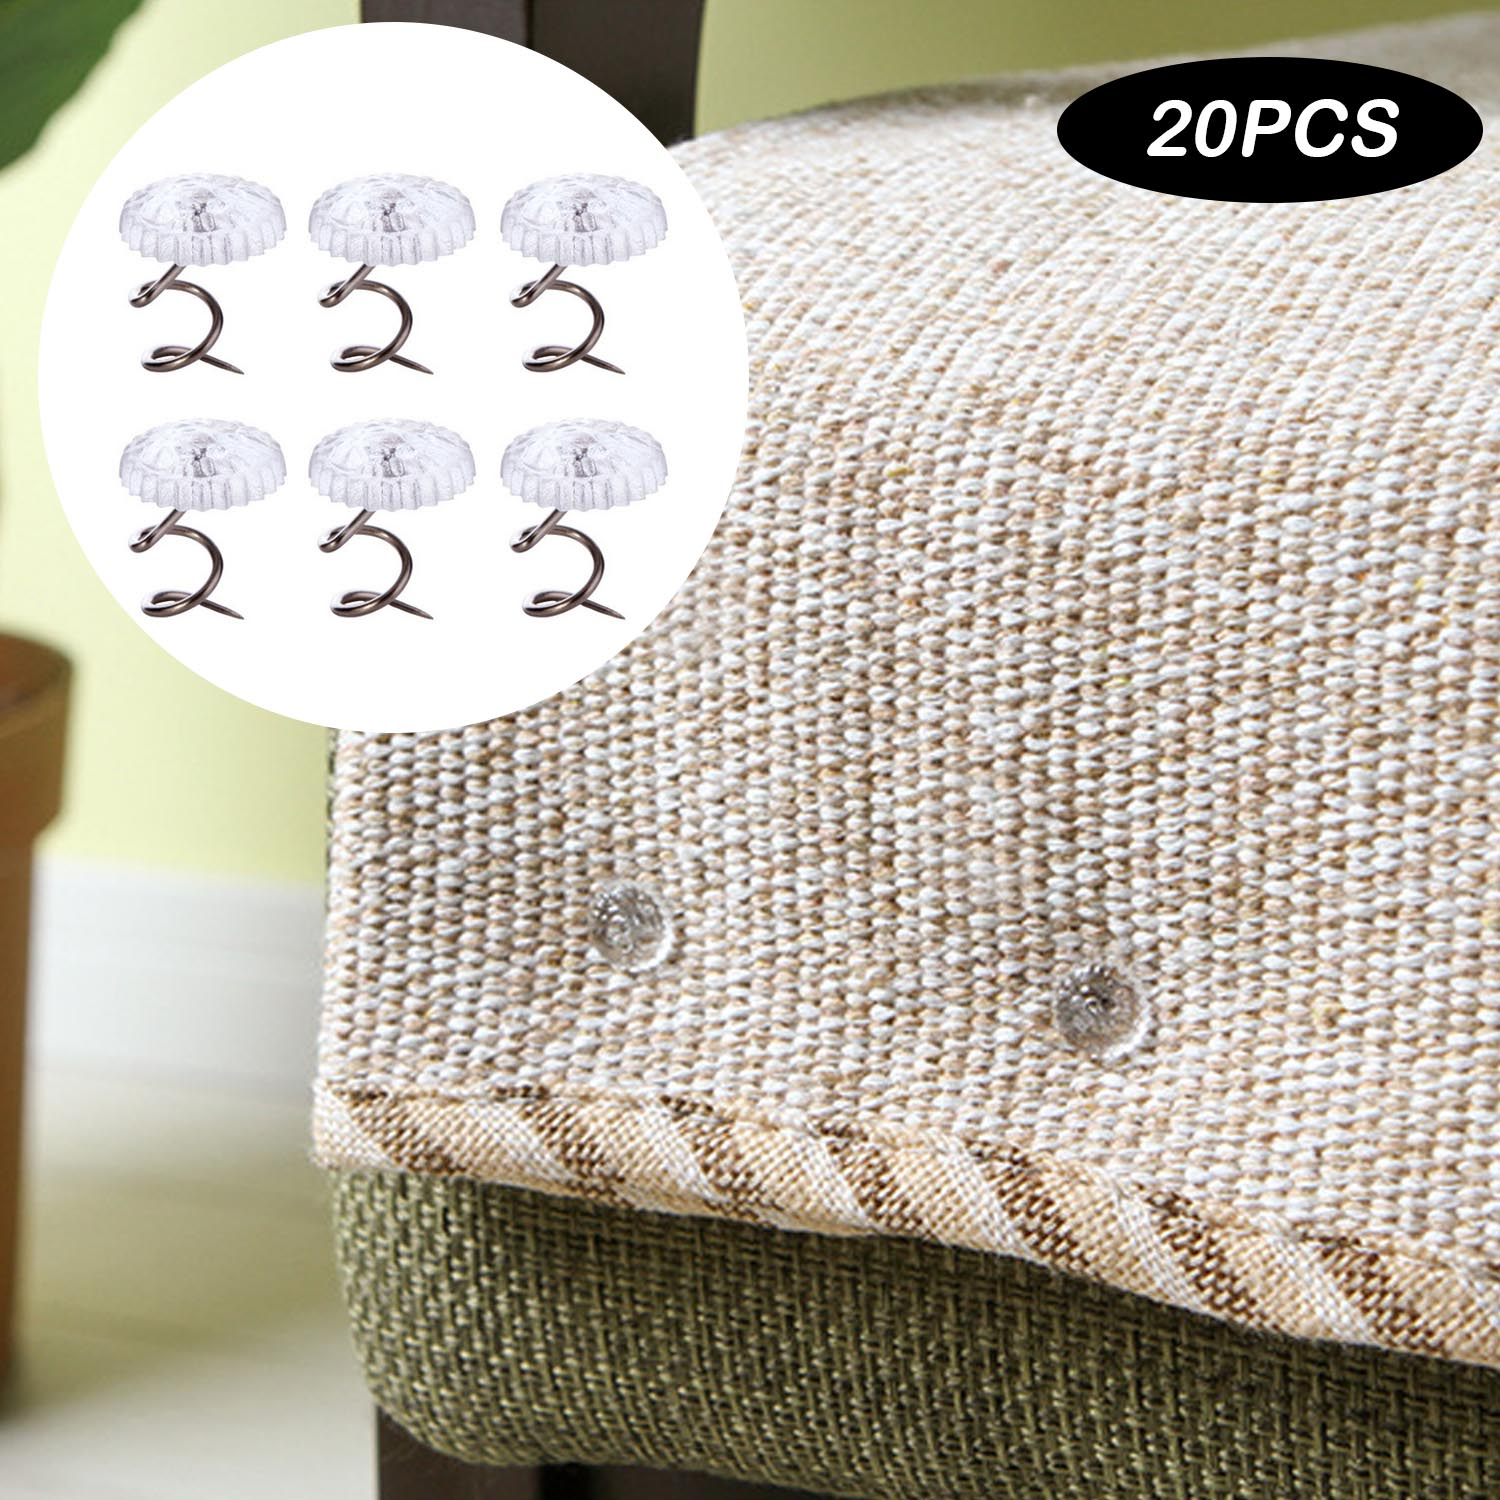 Behogar 20pcs Twisty Pins Couch Slip Cover Fasteners With Clear Heads For Upholstery Slipcovers Bedskirts Sofa Armrest Covers Clothes Pegs Aliexpress